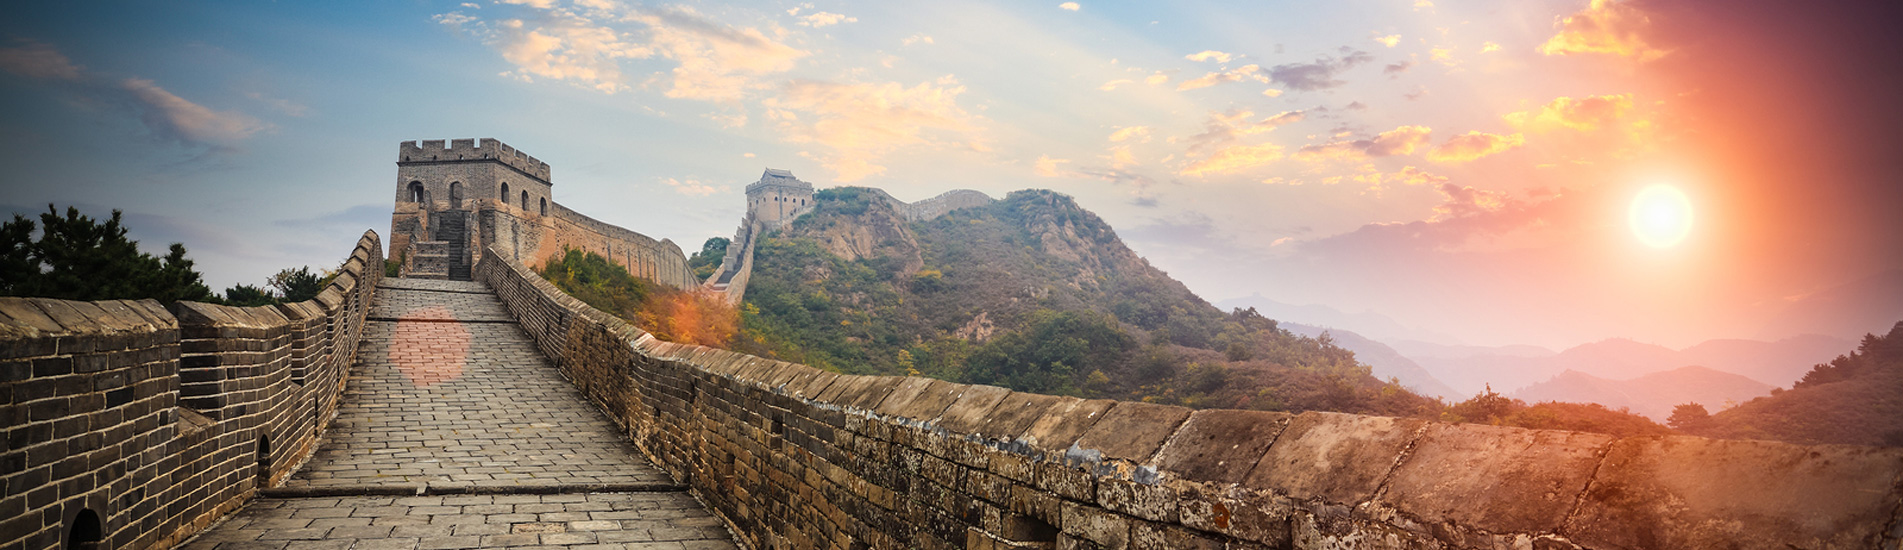 the sunrise at the Mutianyu Great Wall